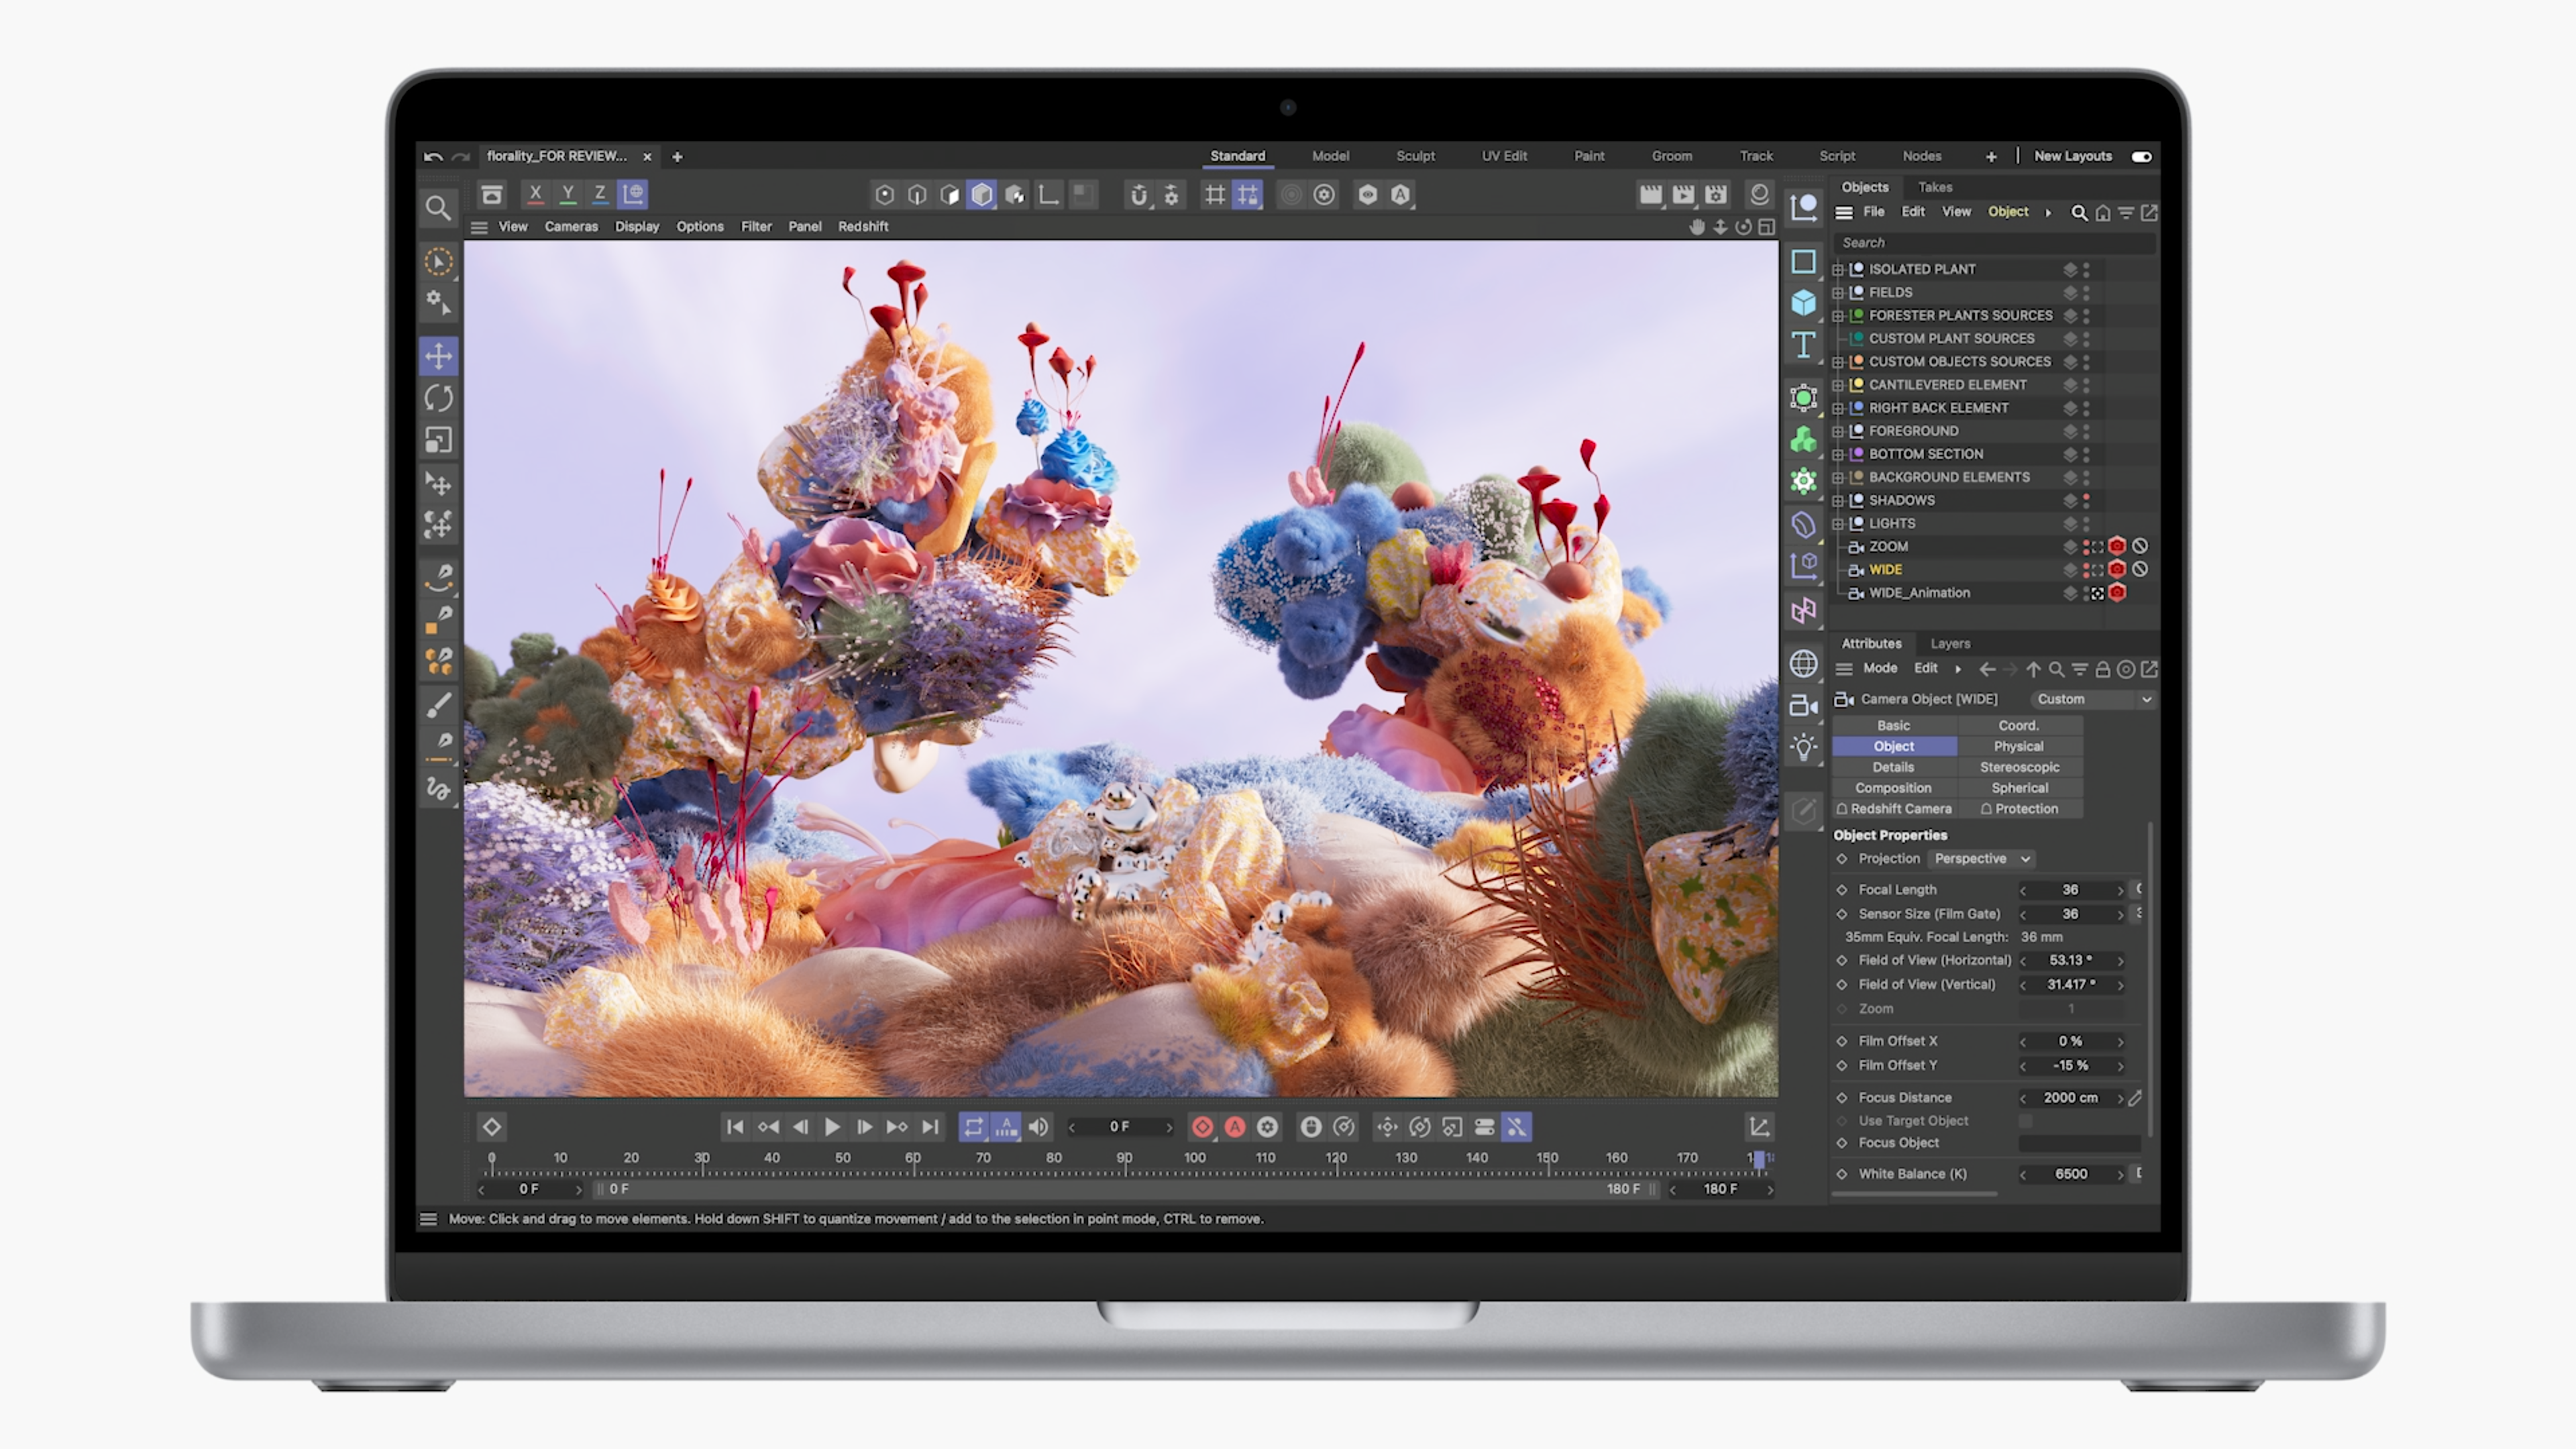 14-inch MacBook Pro 2021: Apple's smallest Pro laptop gets new M1 chips and more